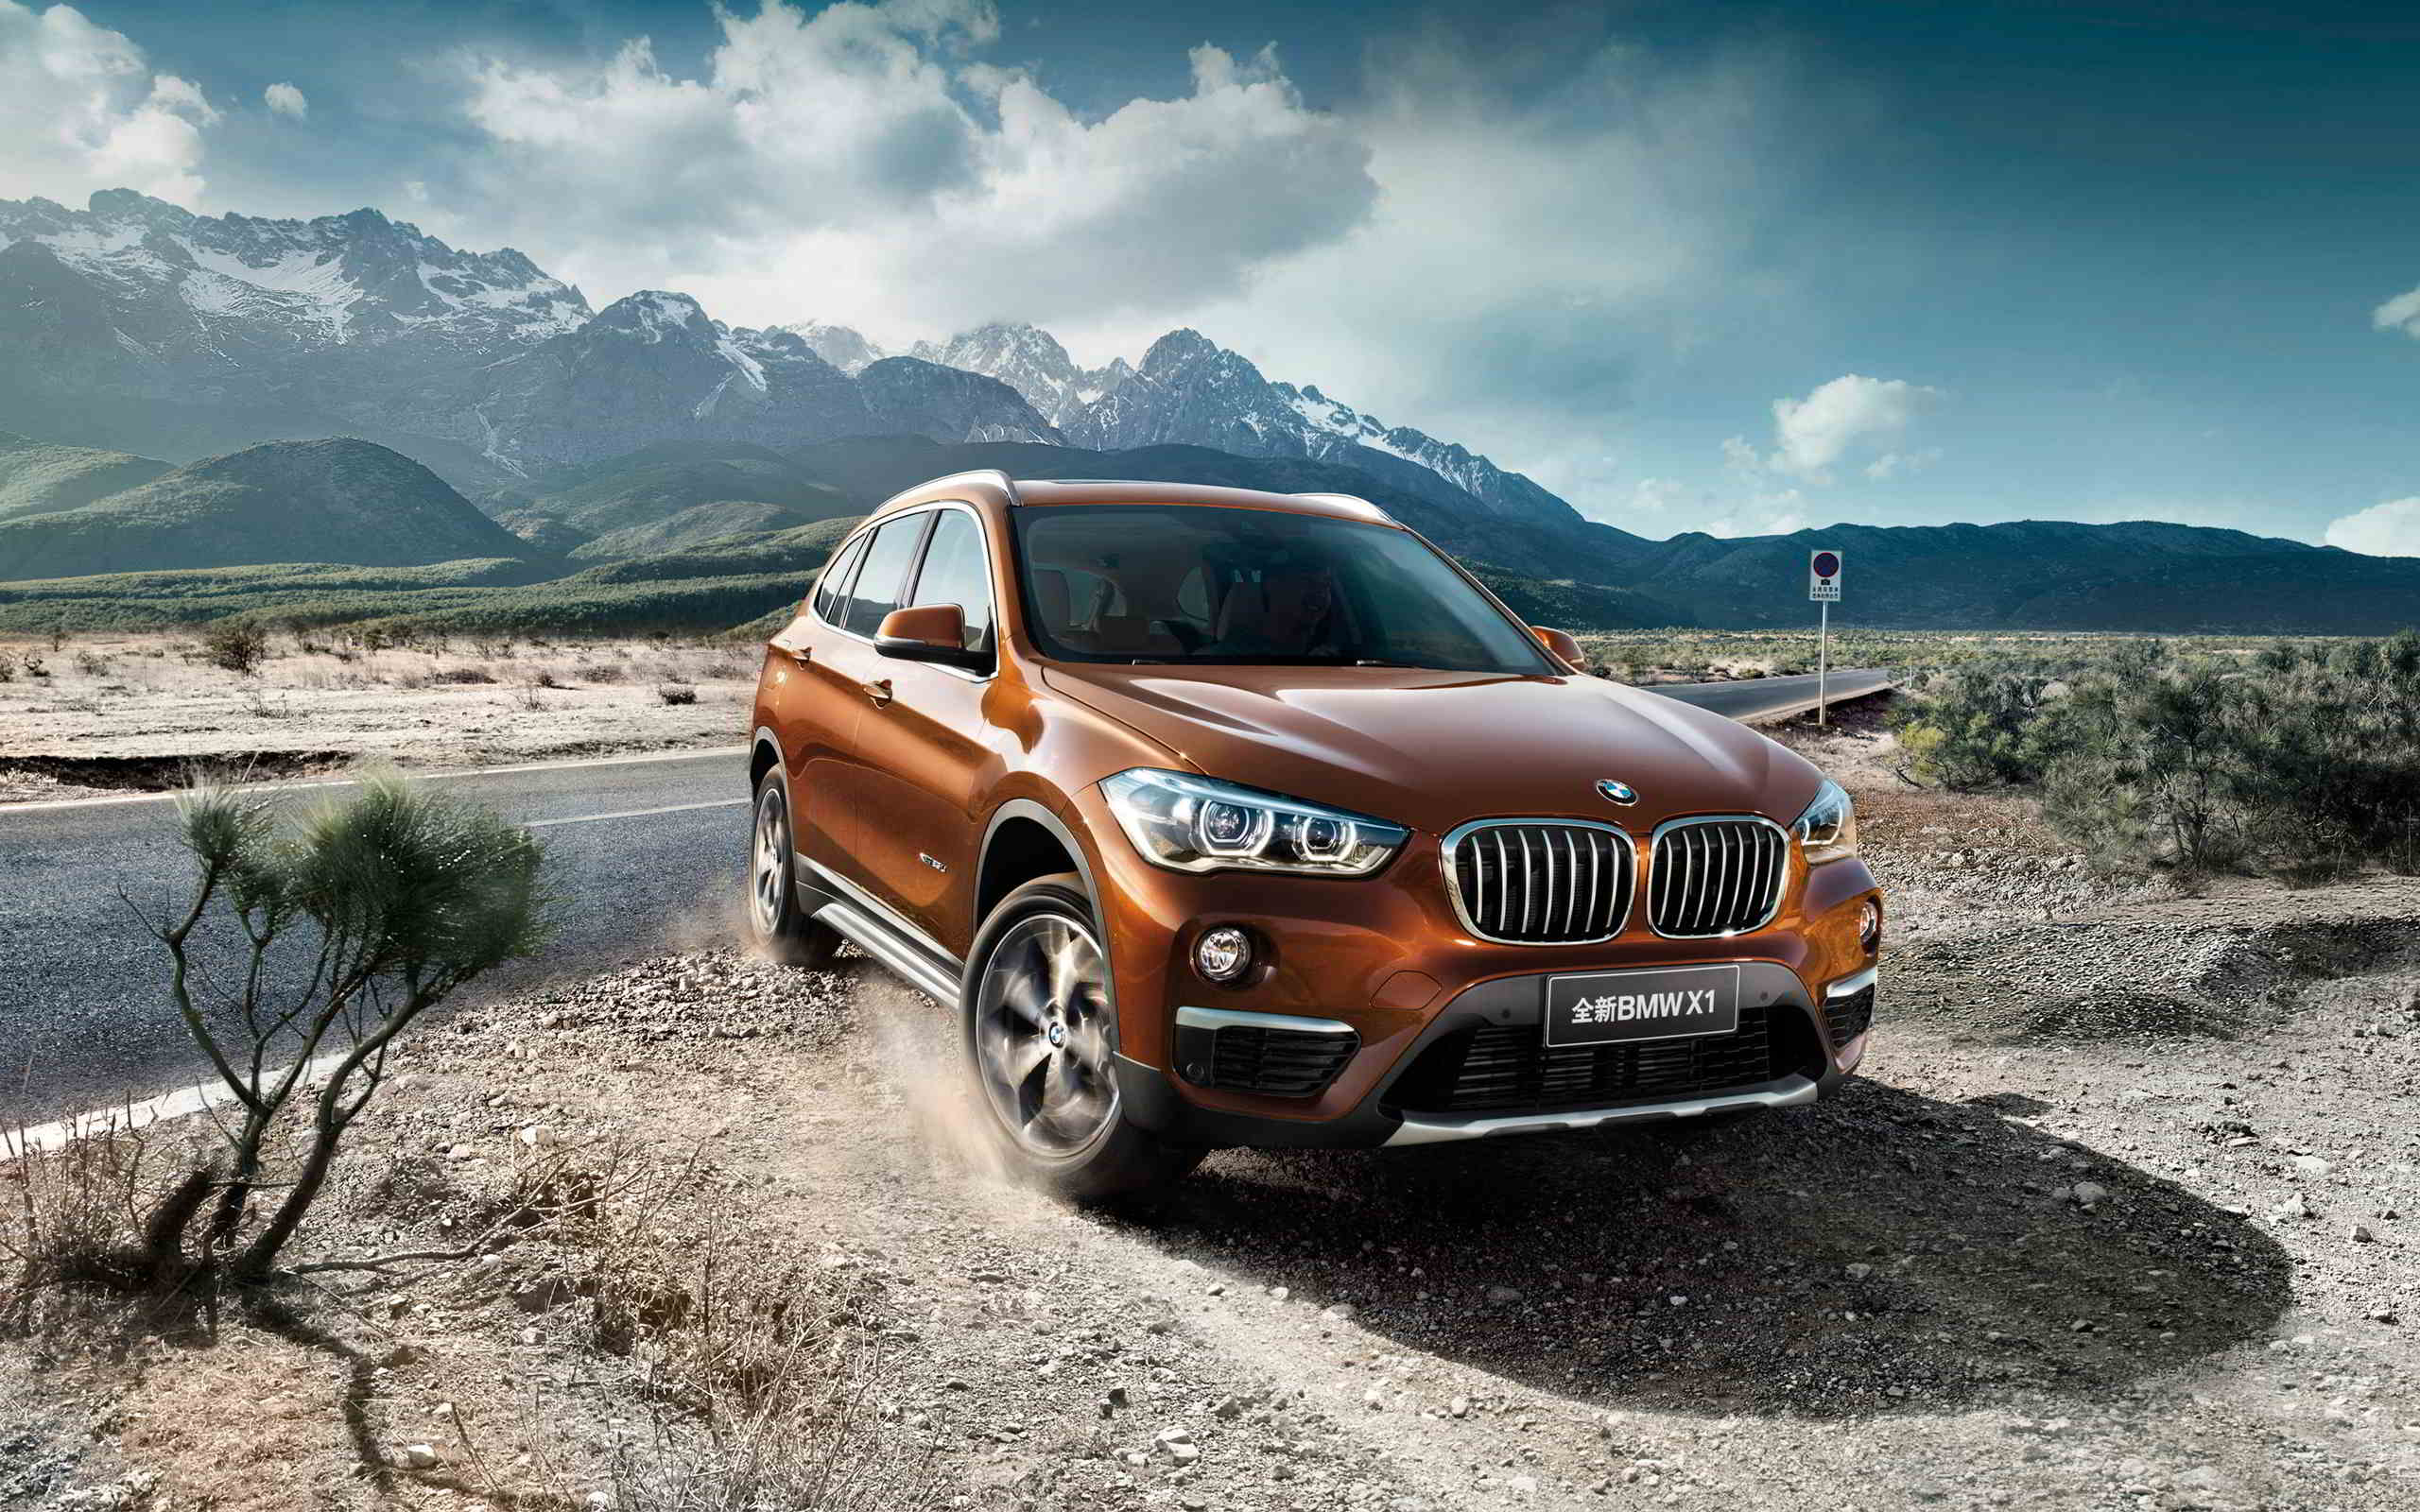 bmw x1 wallpaper